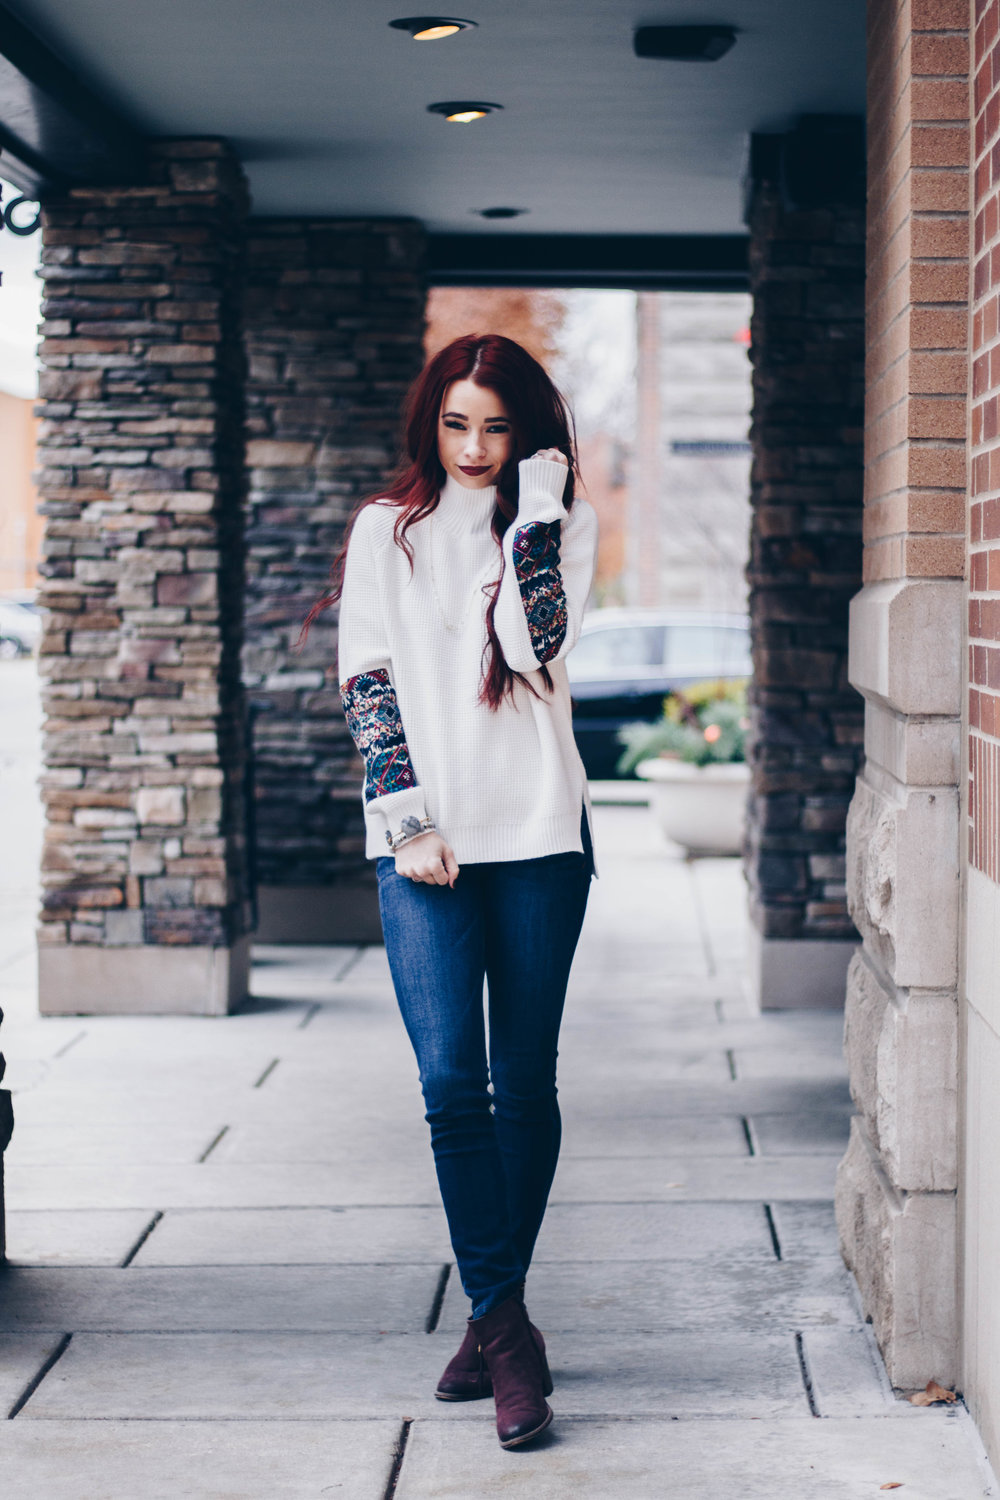 Sweater Weather with Lesley Jane by Indianapolis fashion blogger Trendy in Indy